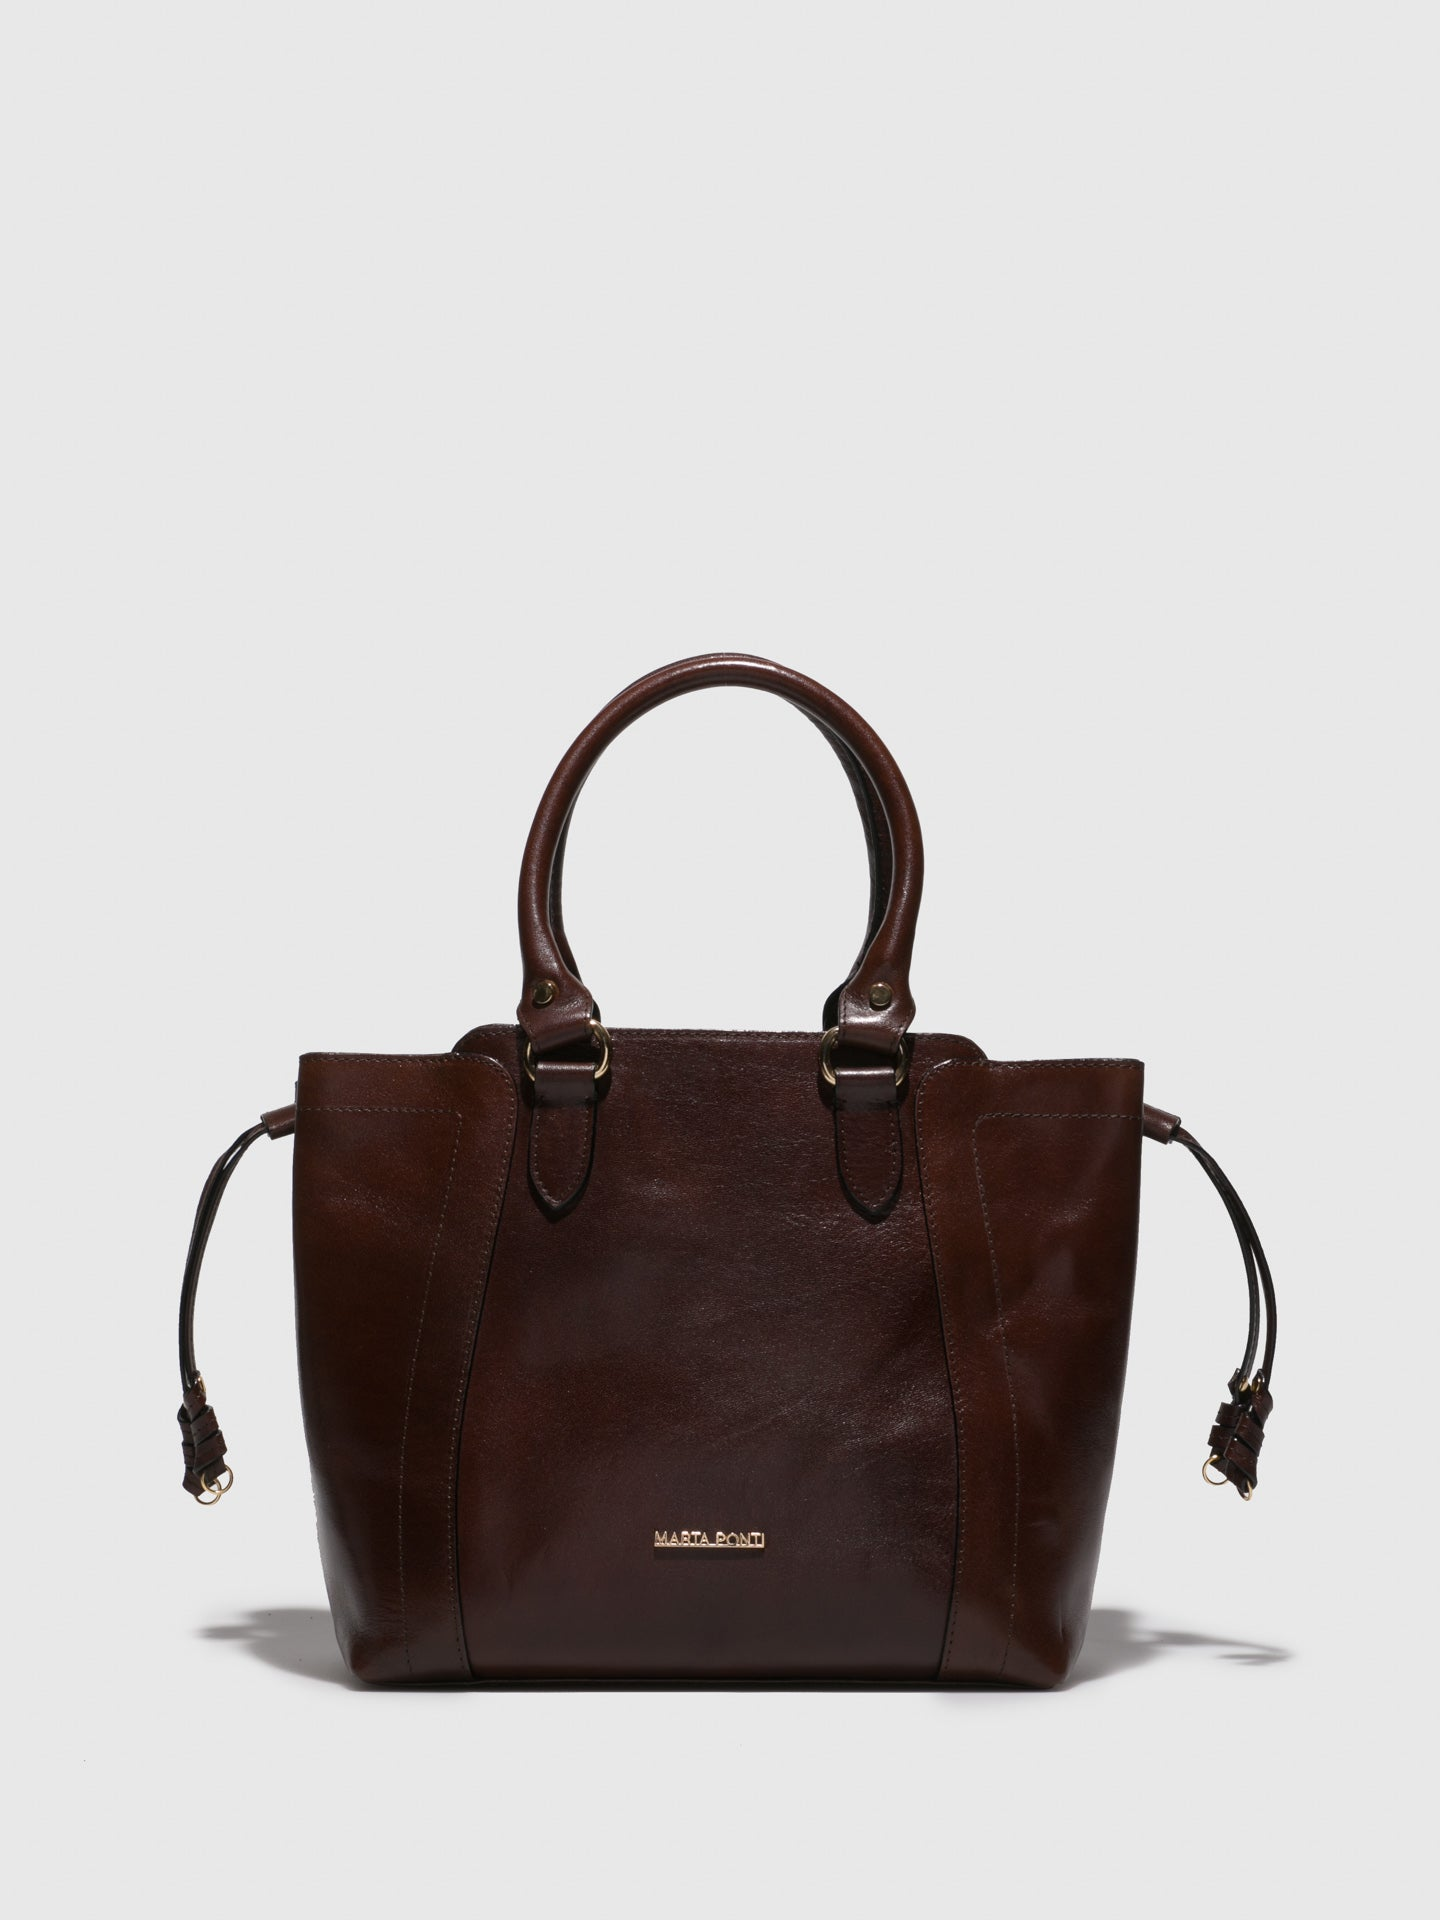 MARTA PONTI Chocolate Handbag